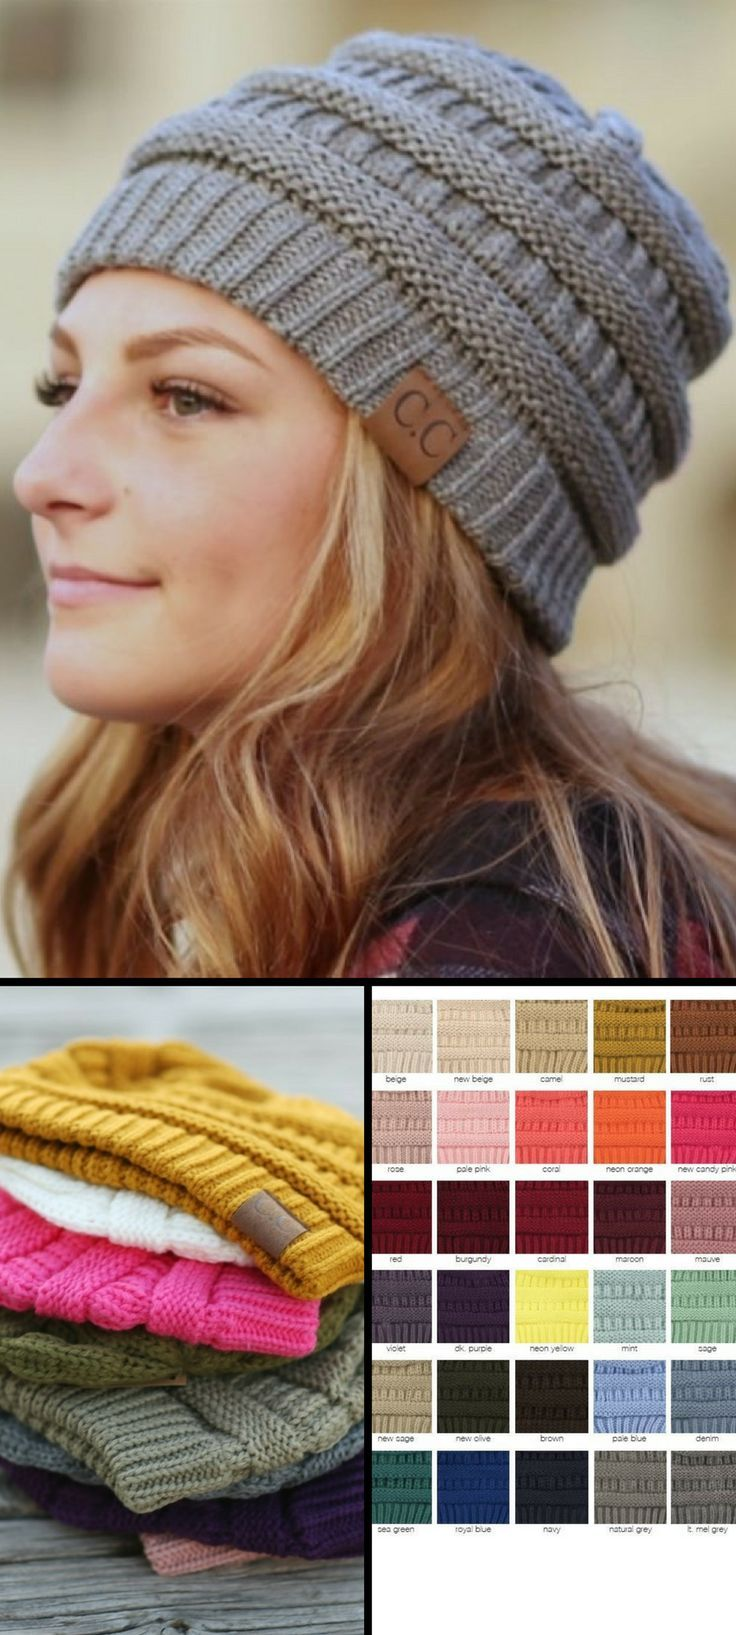 C.C. Beanie Knit Hats Adult and Child Sizes #fashion#CC#ad